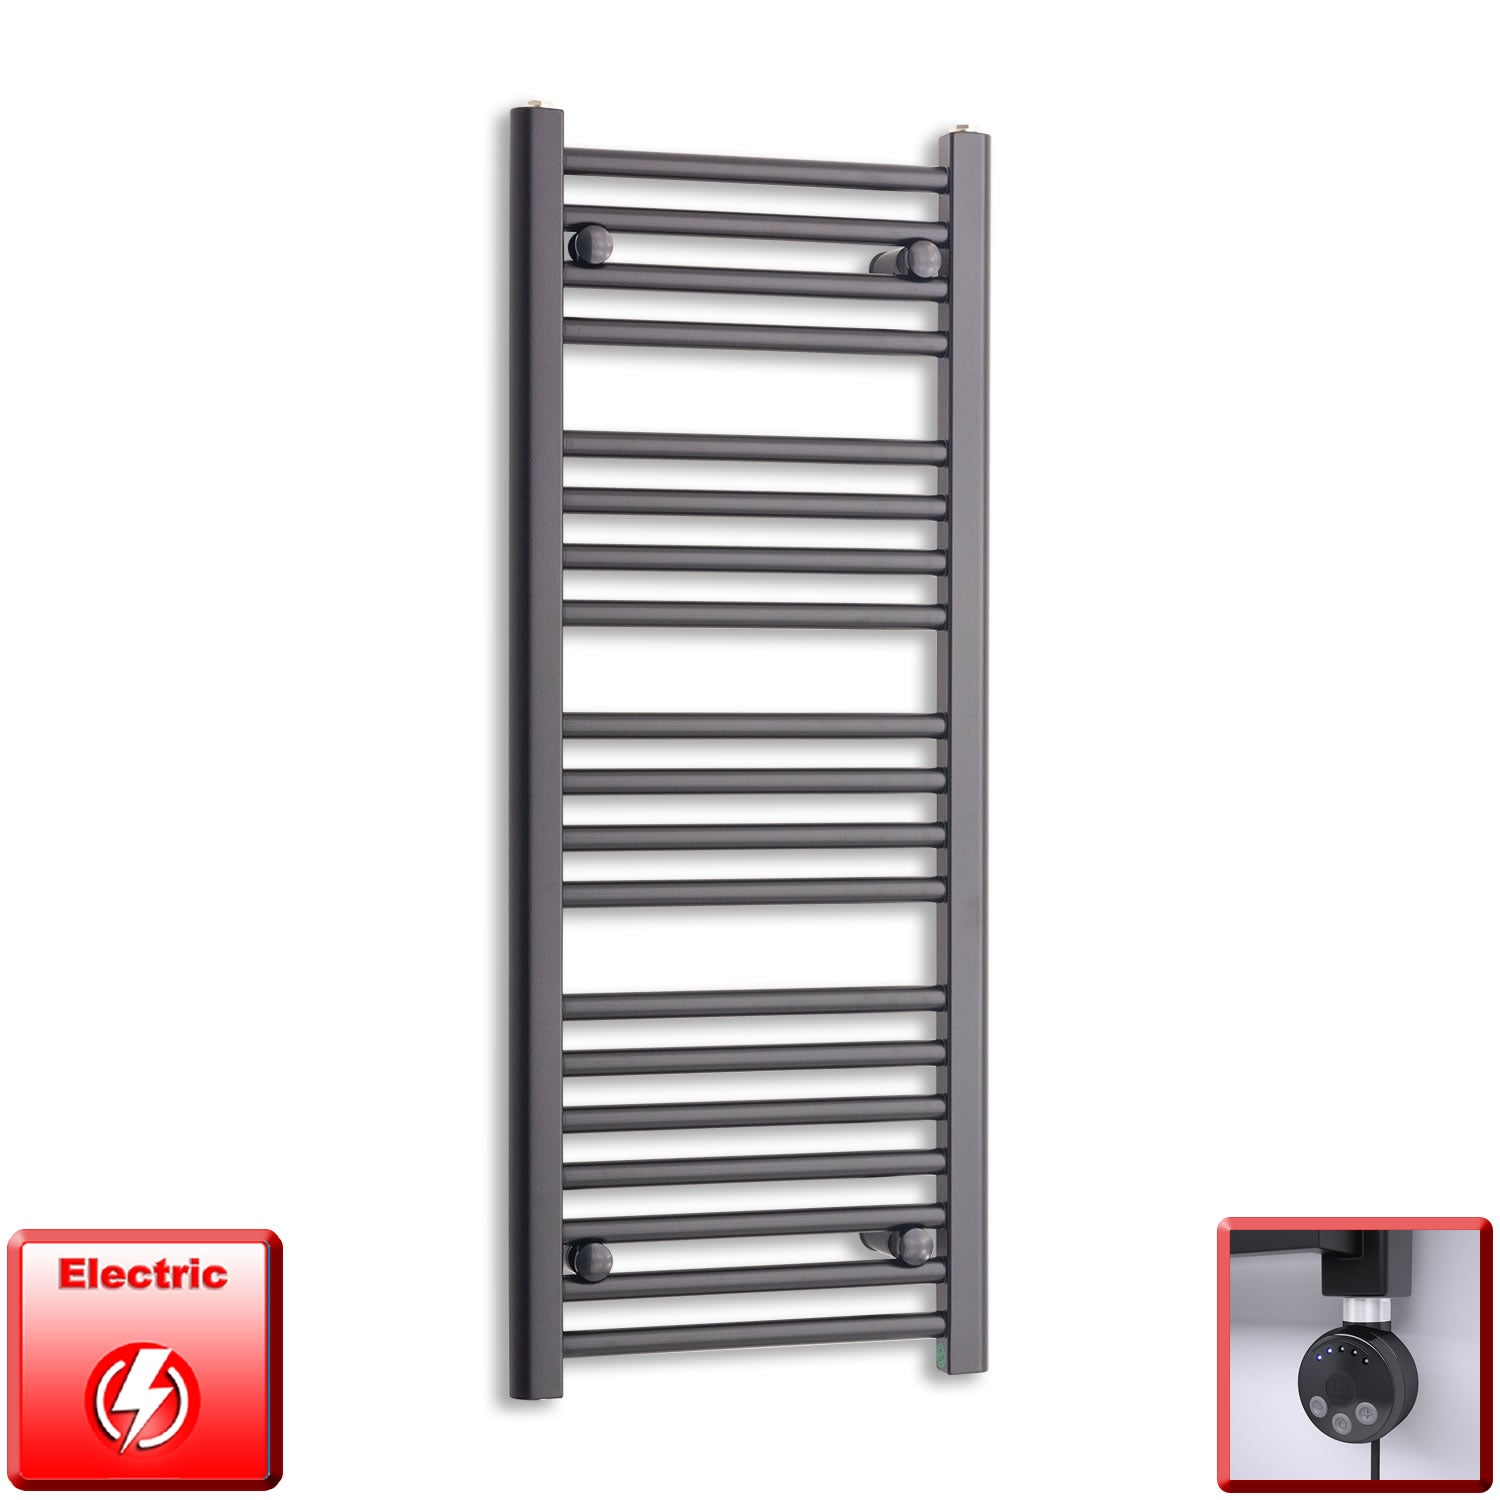 400mm Wide 1000mm High Pre-Filled Black Electric Towel Rail Radiator With Thermostatic MEG Element